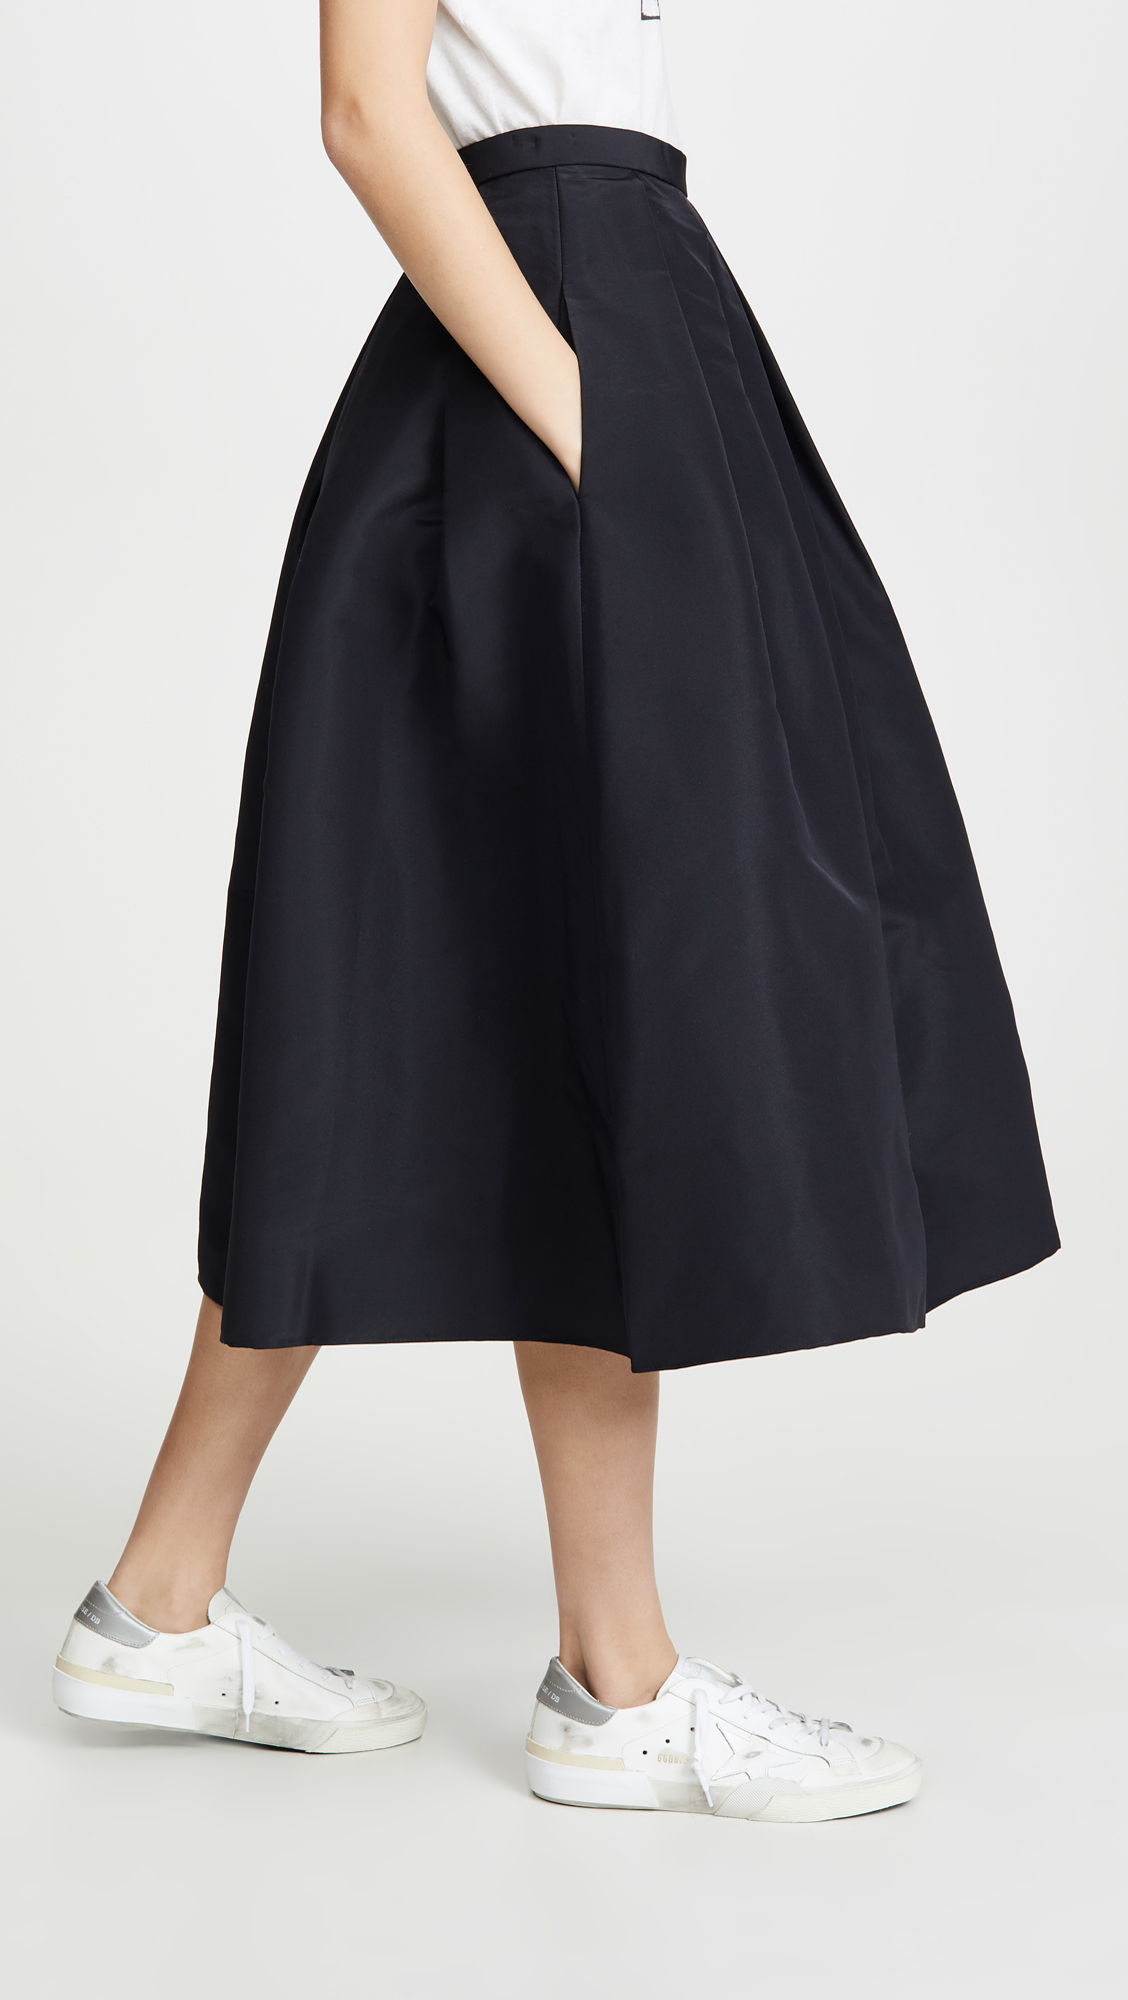 Allover Box Pleats Skirt